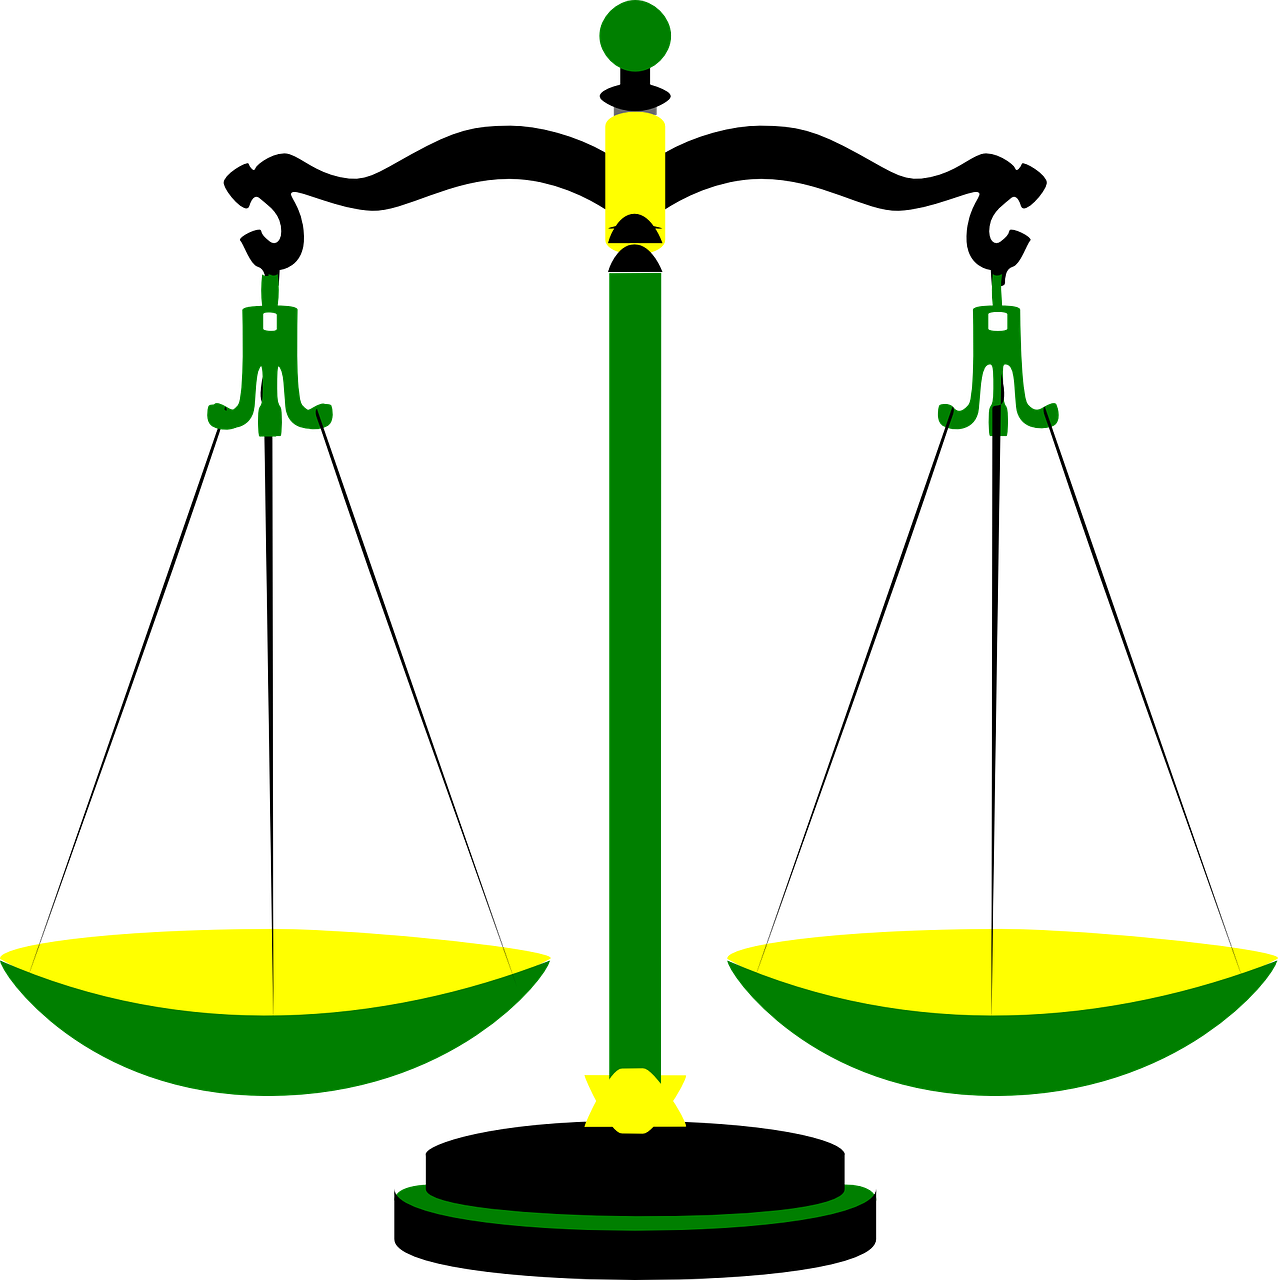 Laws clipart balance scale. Justice scales weighing law